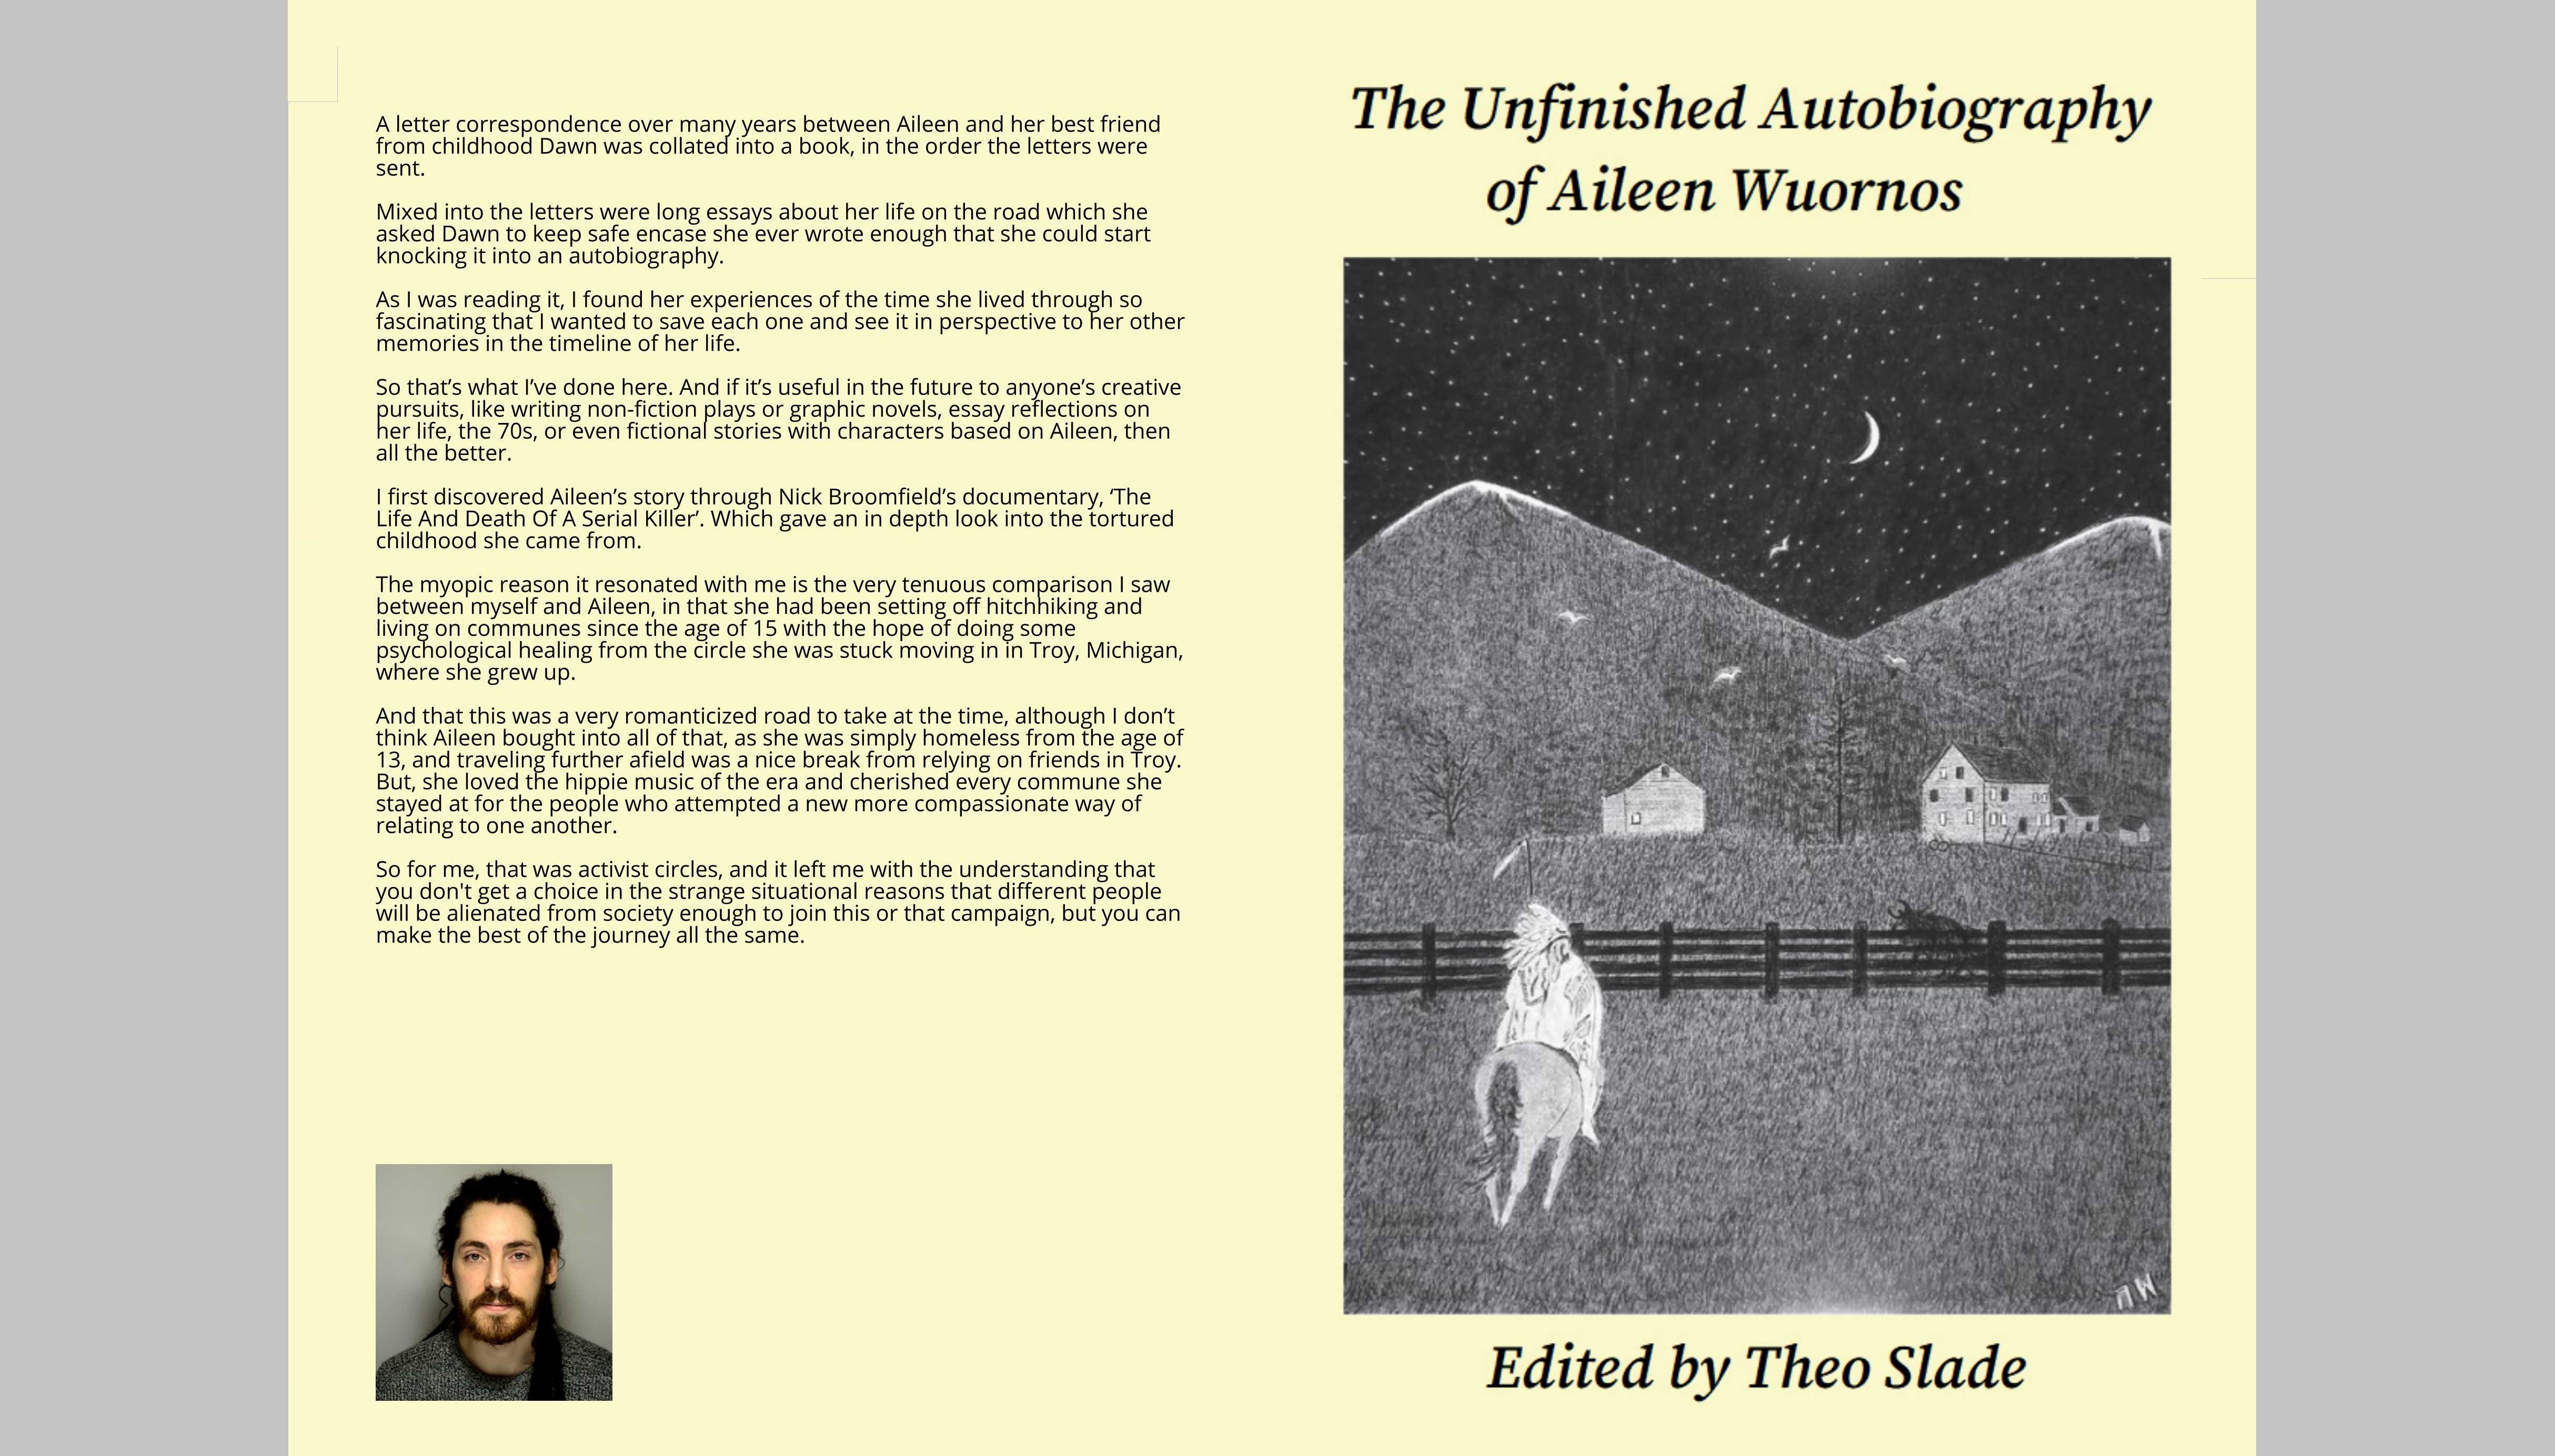 The Unfinished Autobiography of Aileen Wuornos